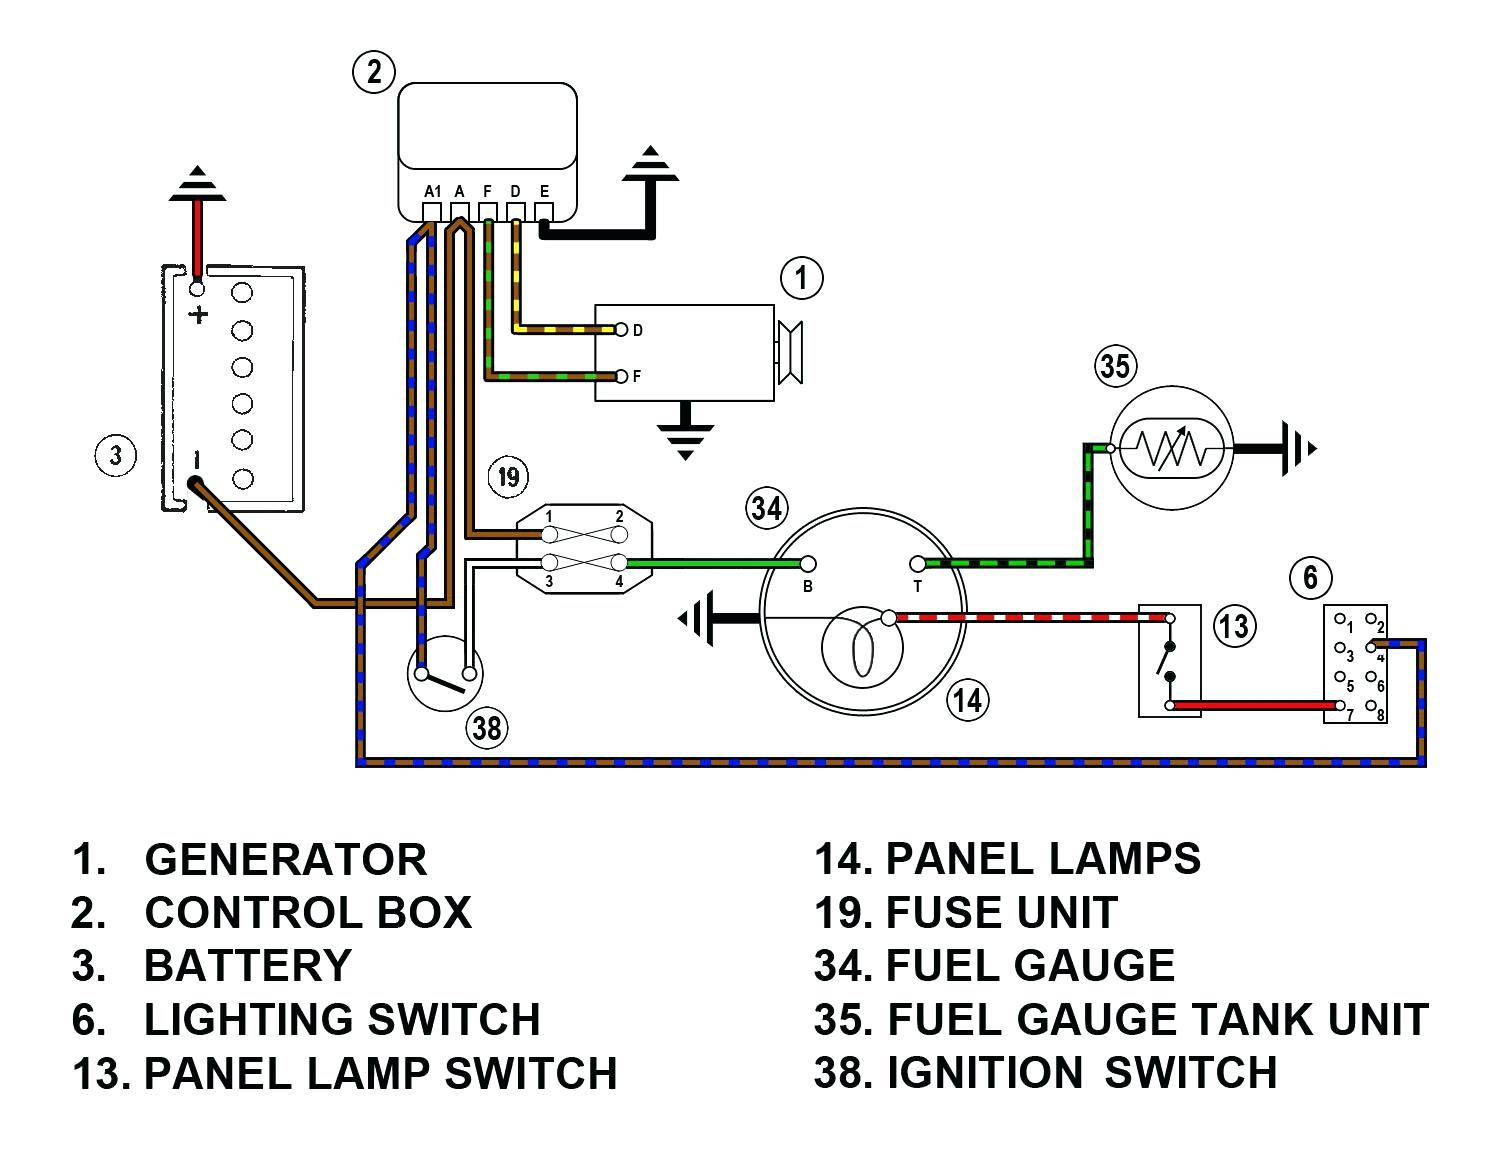 dump trailer pump wiring diagram Collection-hawke dump trailer wiring diagram Collection gooseneck wiring diagram Download Gooseneck Trailer Wiring Diagram Elegant DOWNLOAD Wiring Diagram 12-l